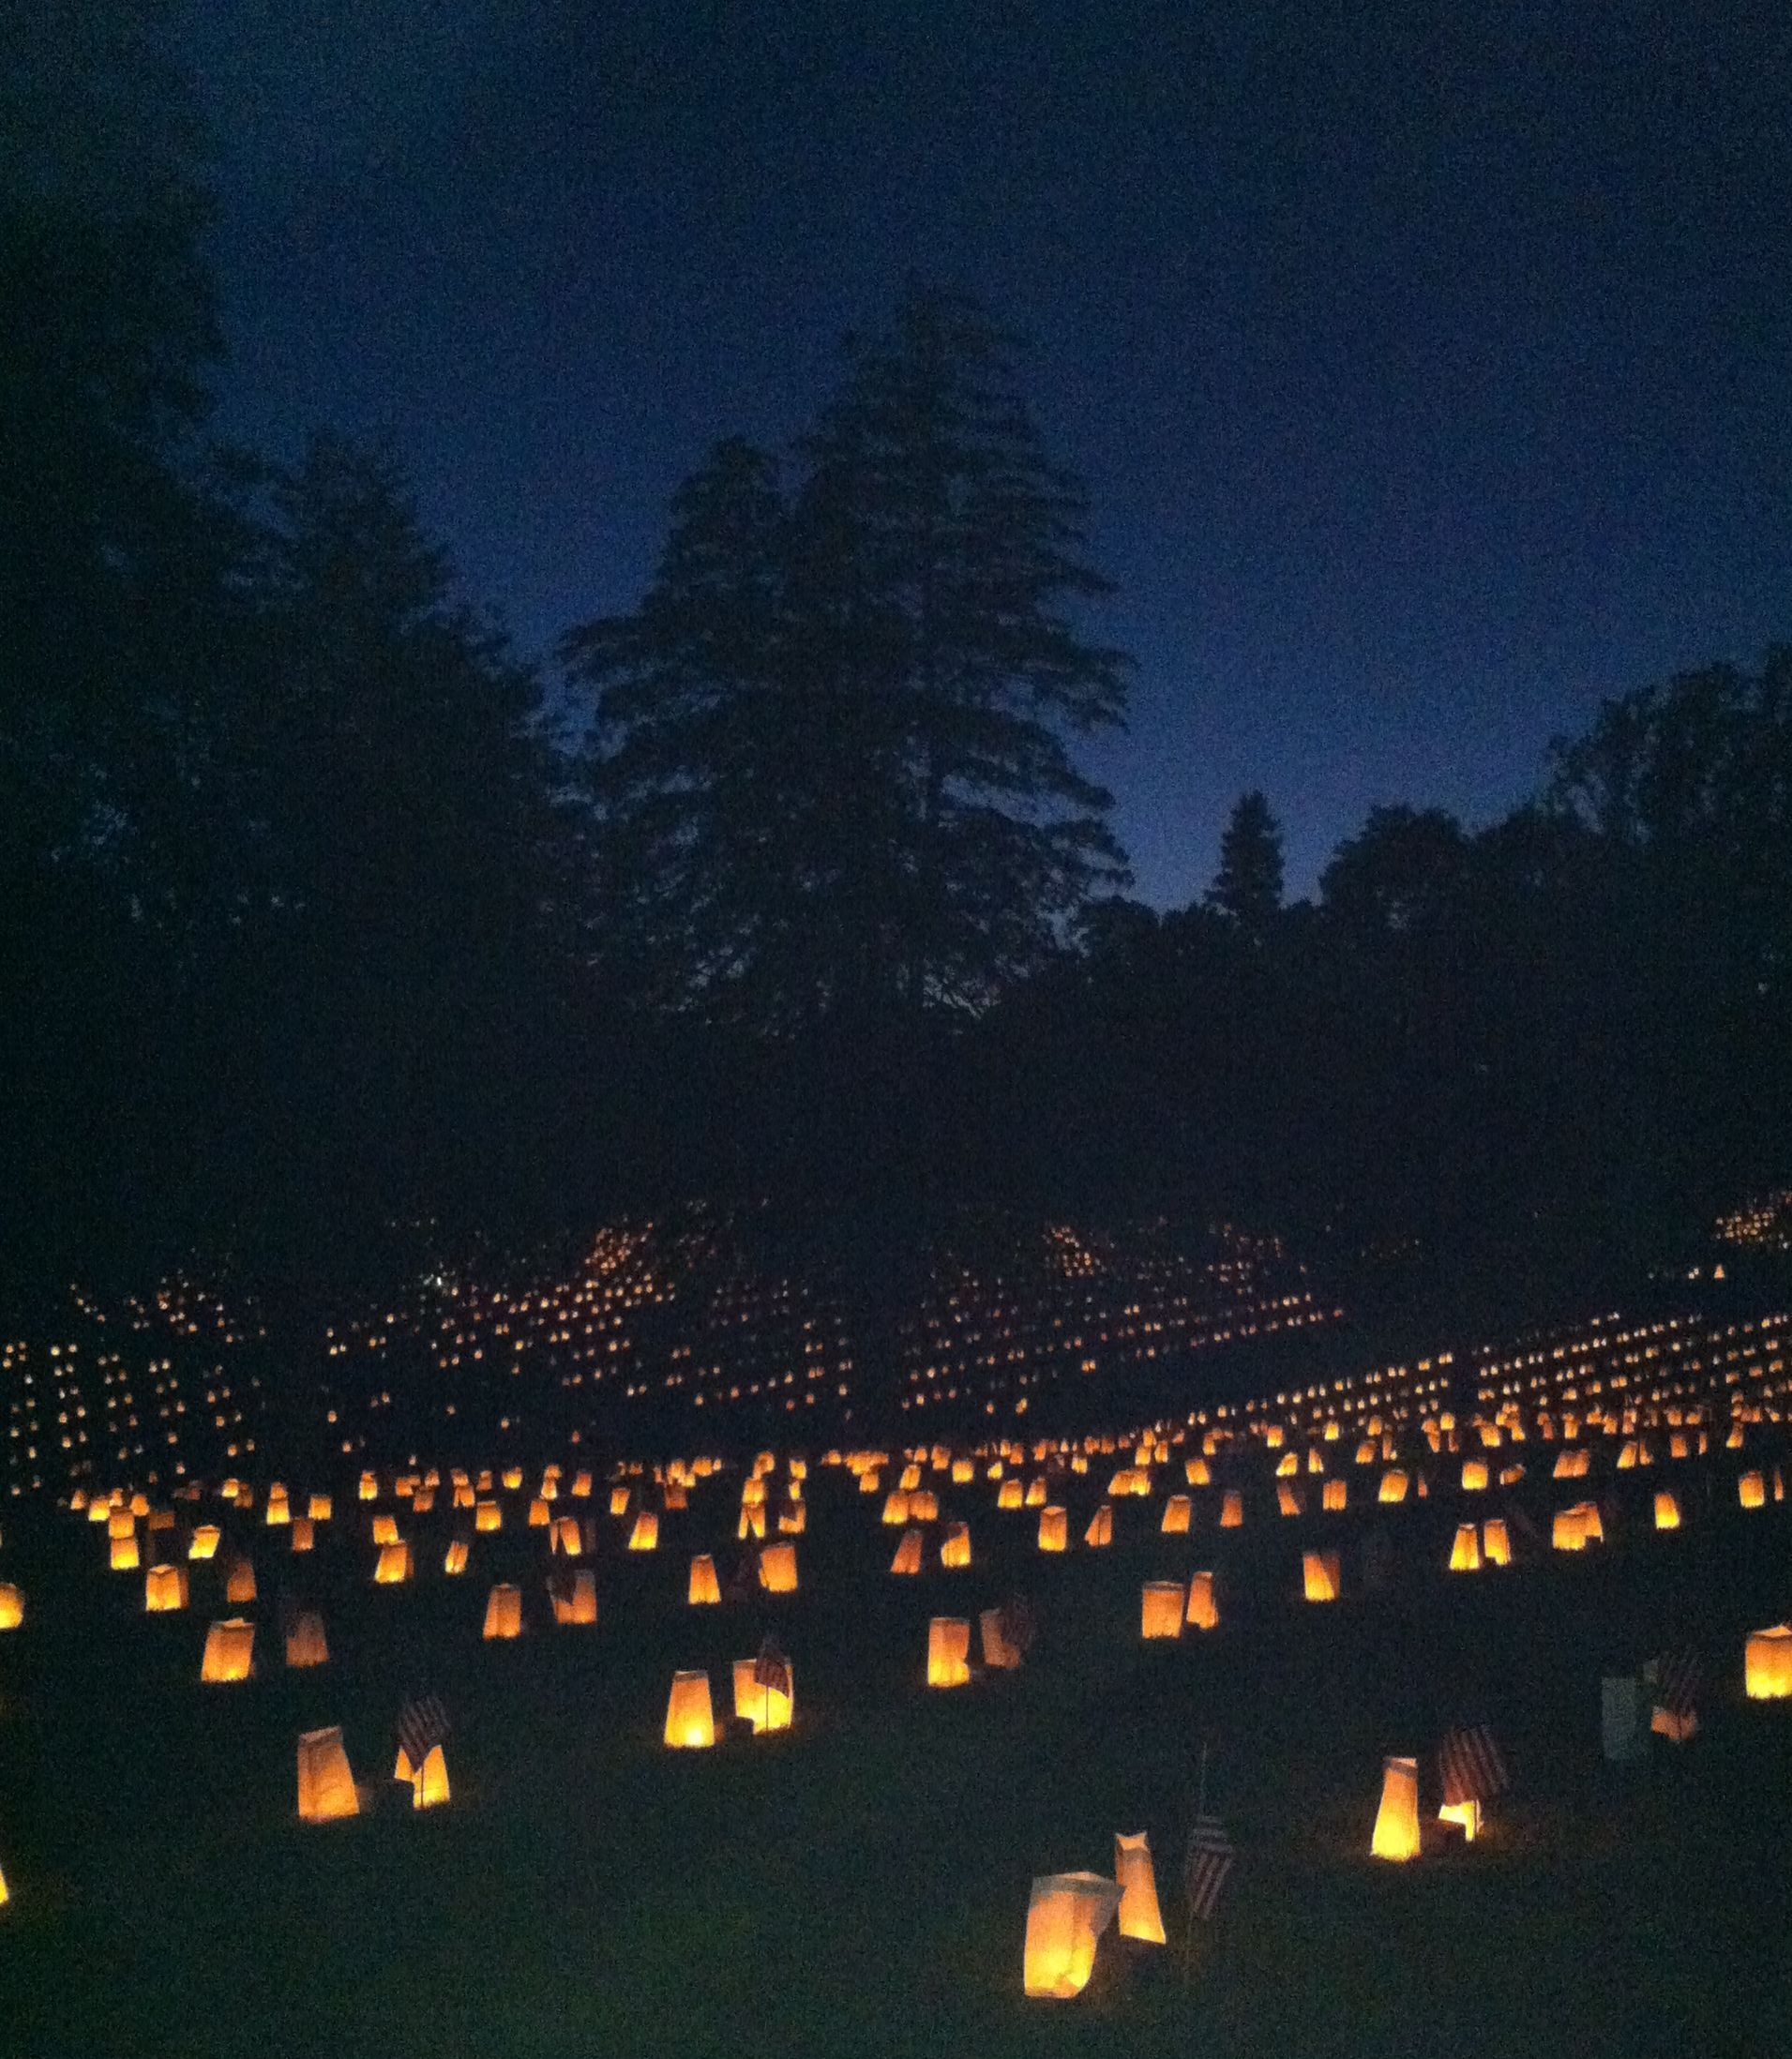 Every year Fredericksburg National Cemetery hosts a luminaria honoring the soldiers buried there.